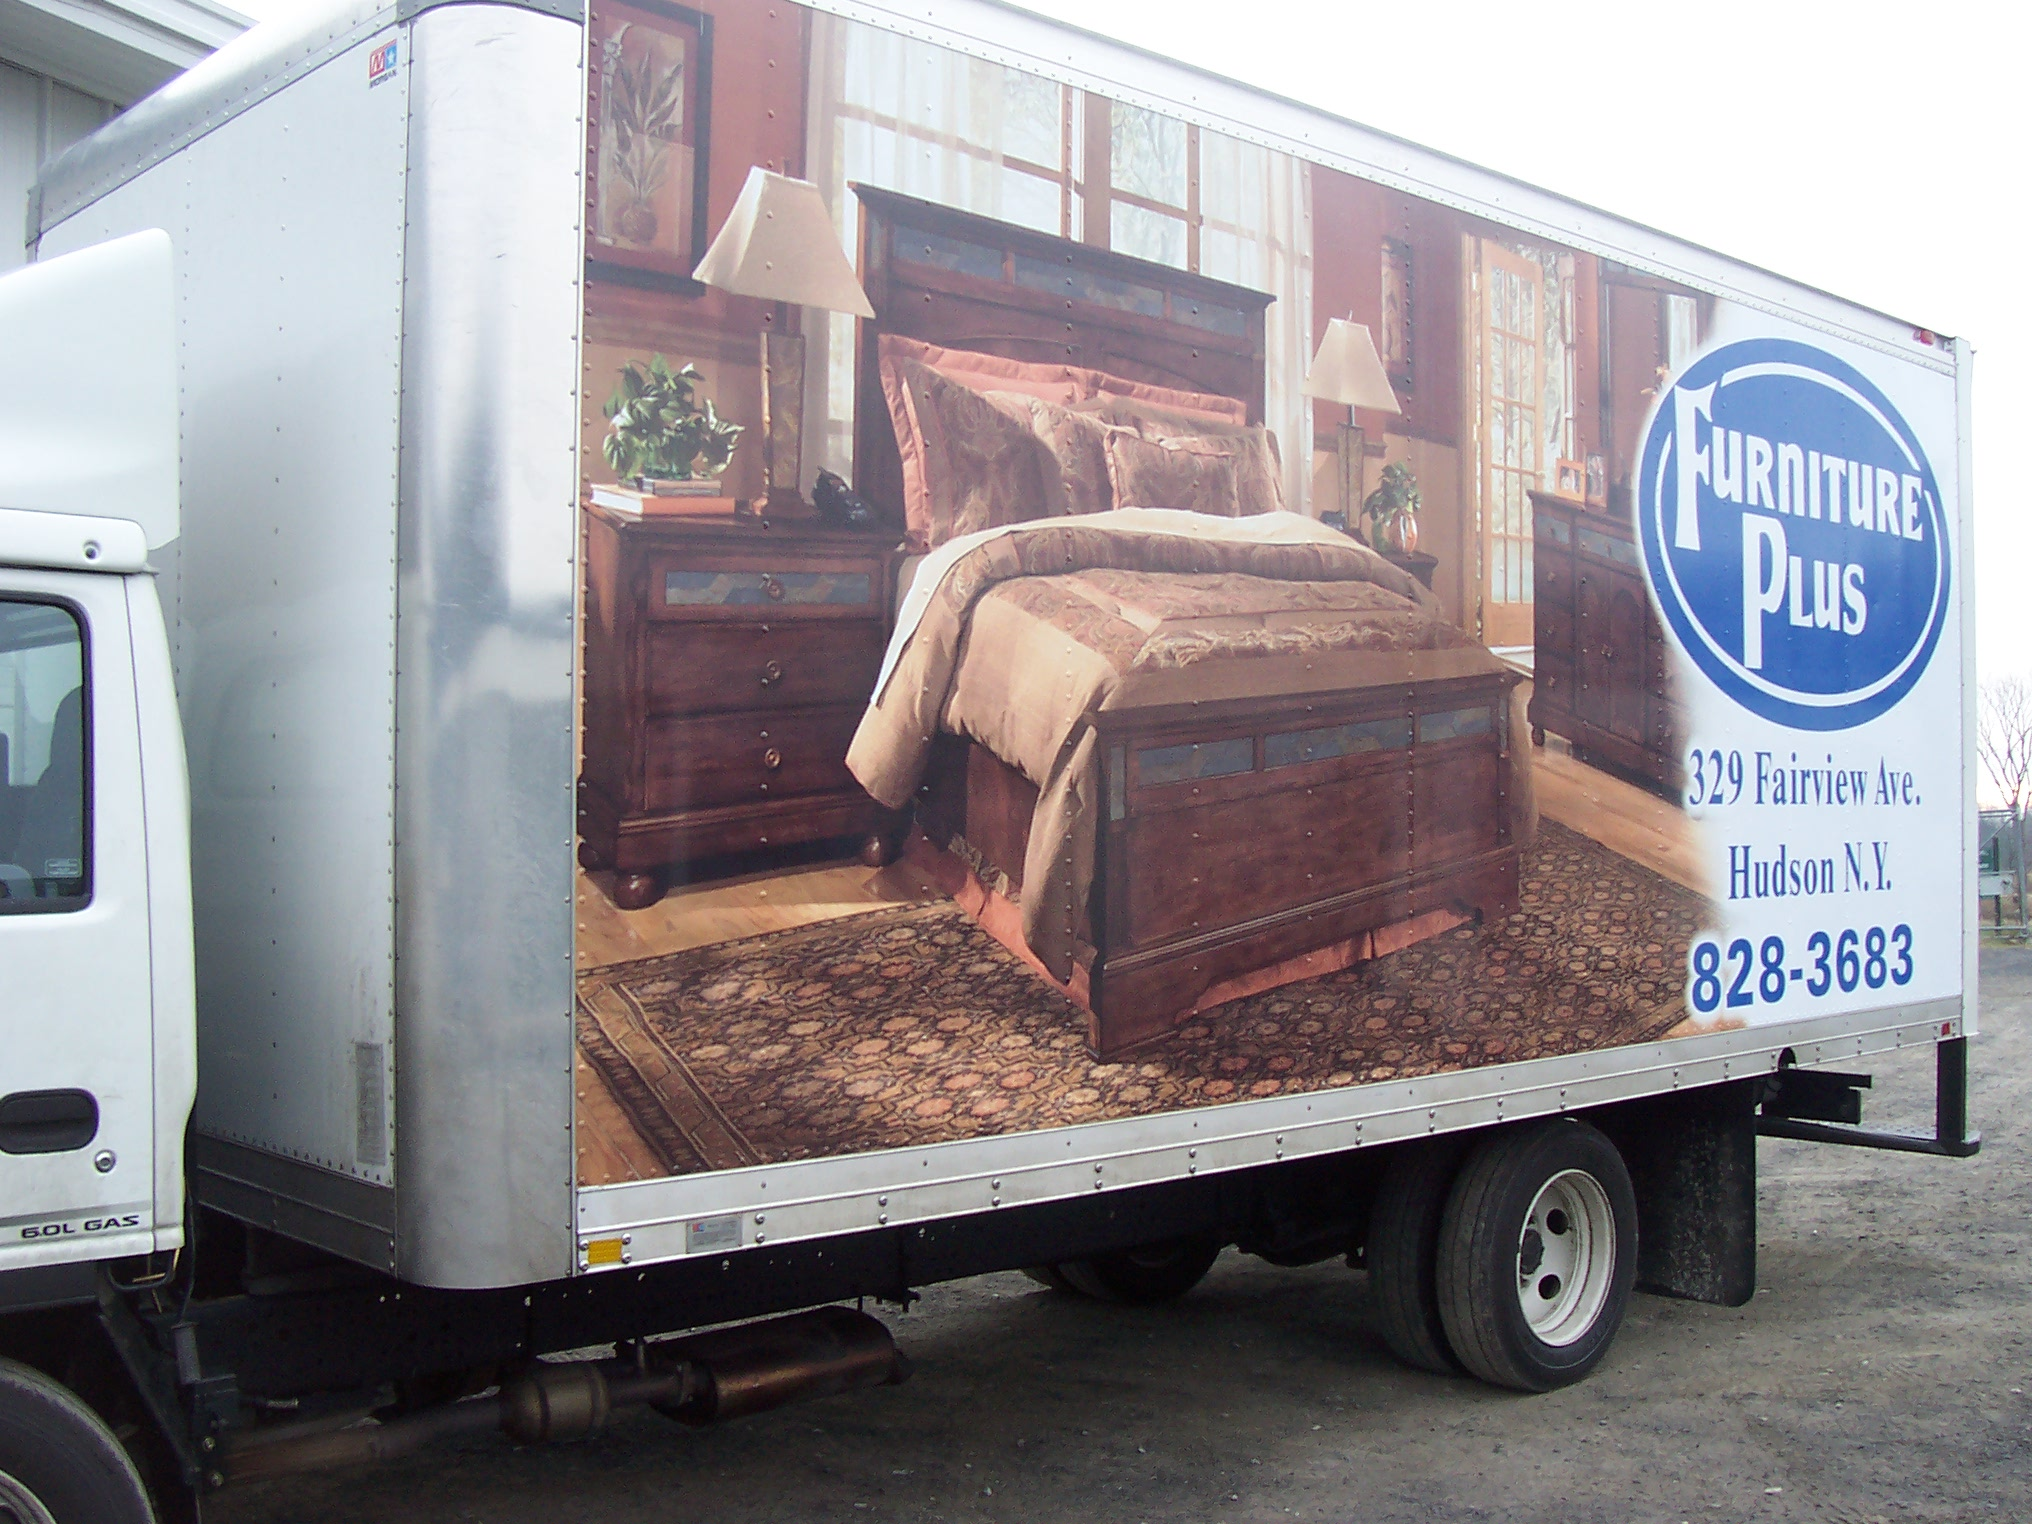 furniture plus truck 1 002.jpg